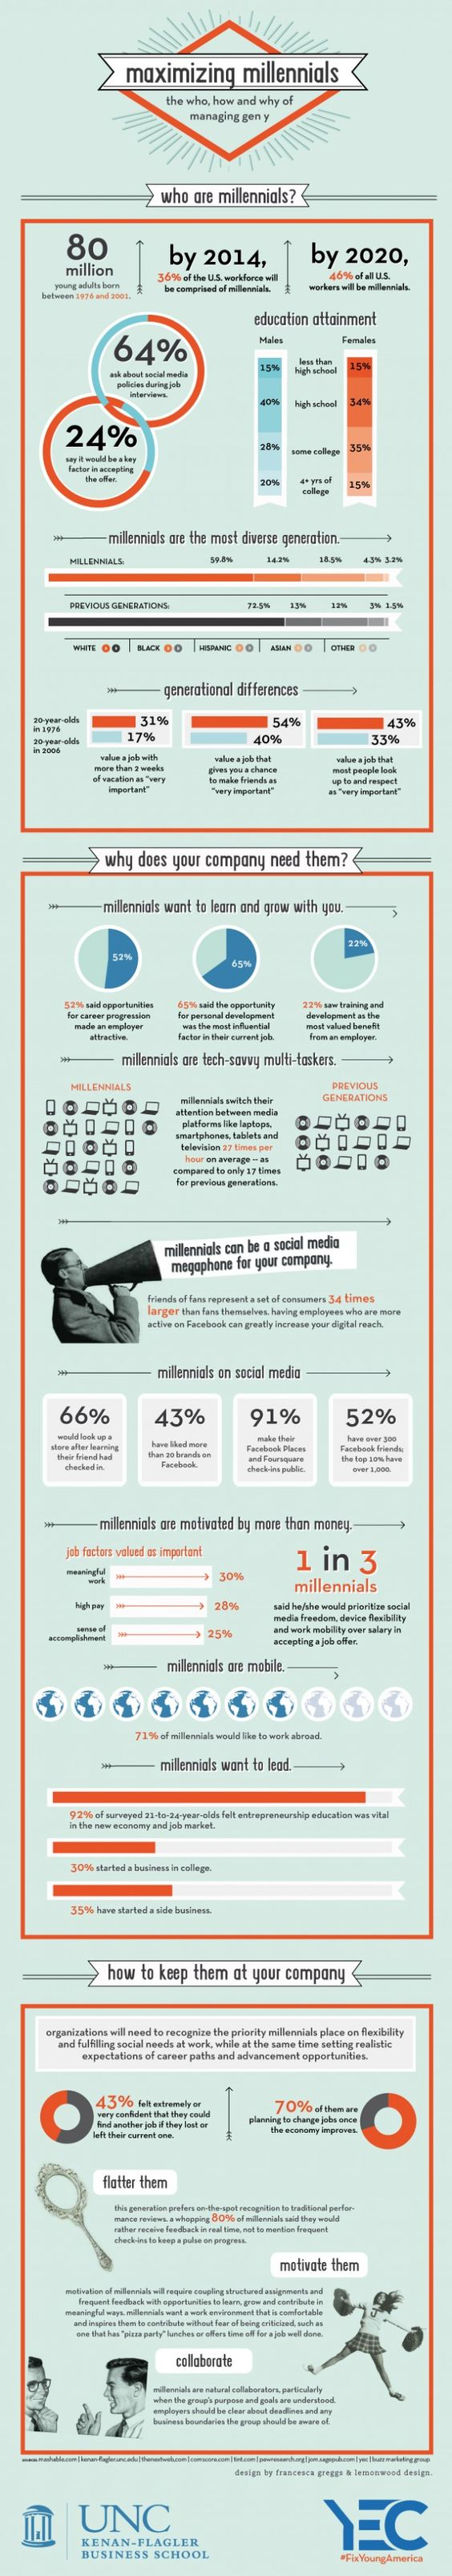 Maximizing Millennials: Why to Hire Gen Y #infographic